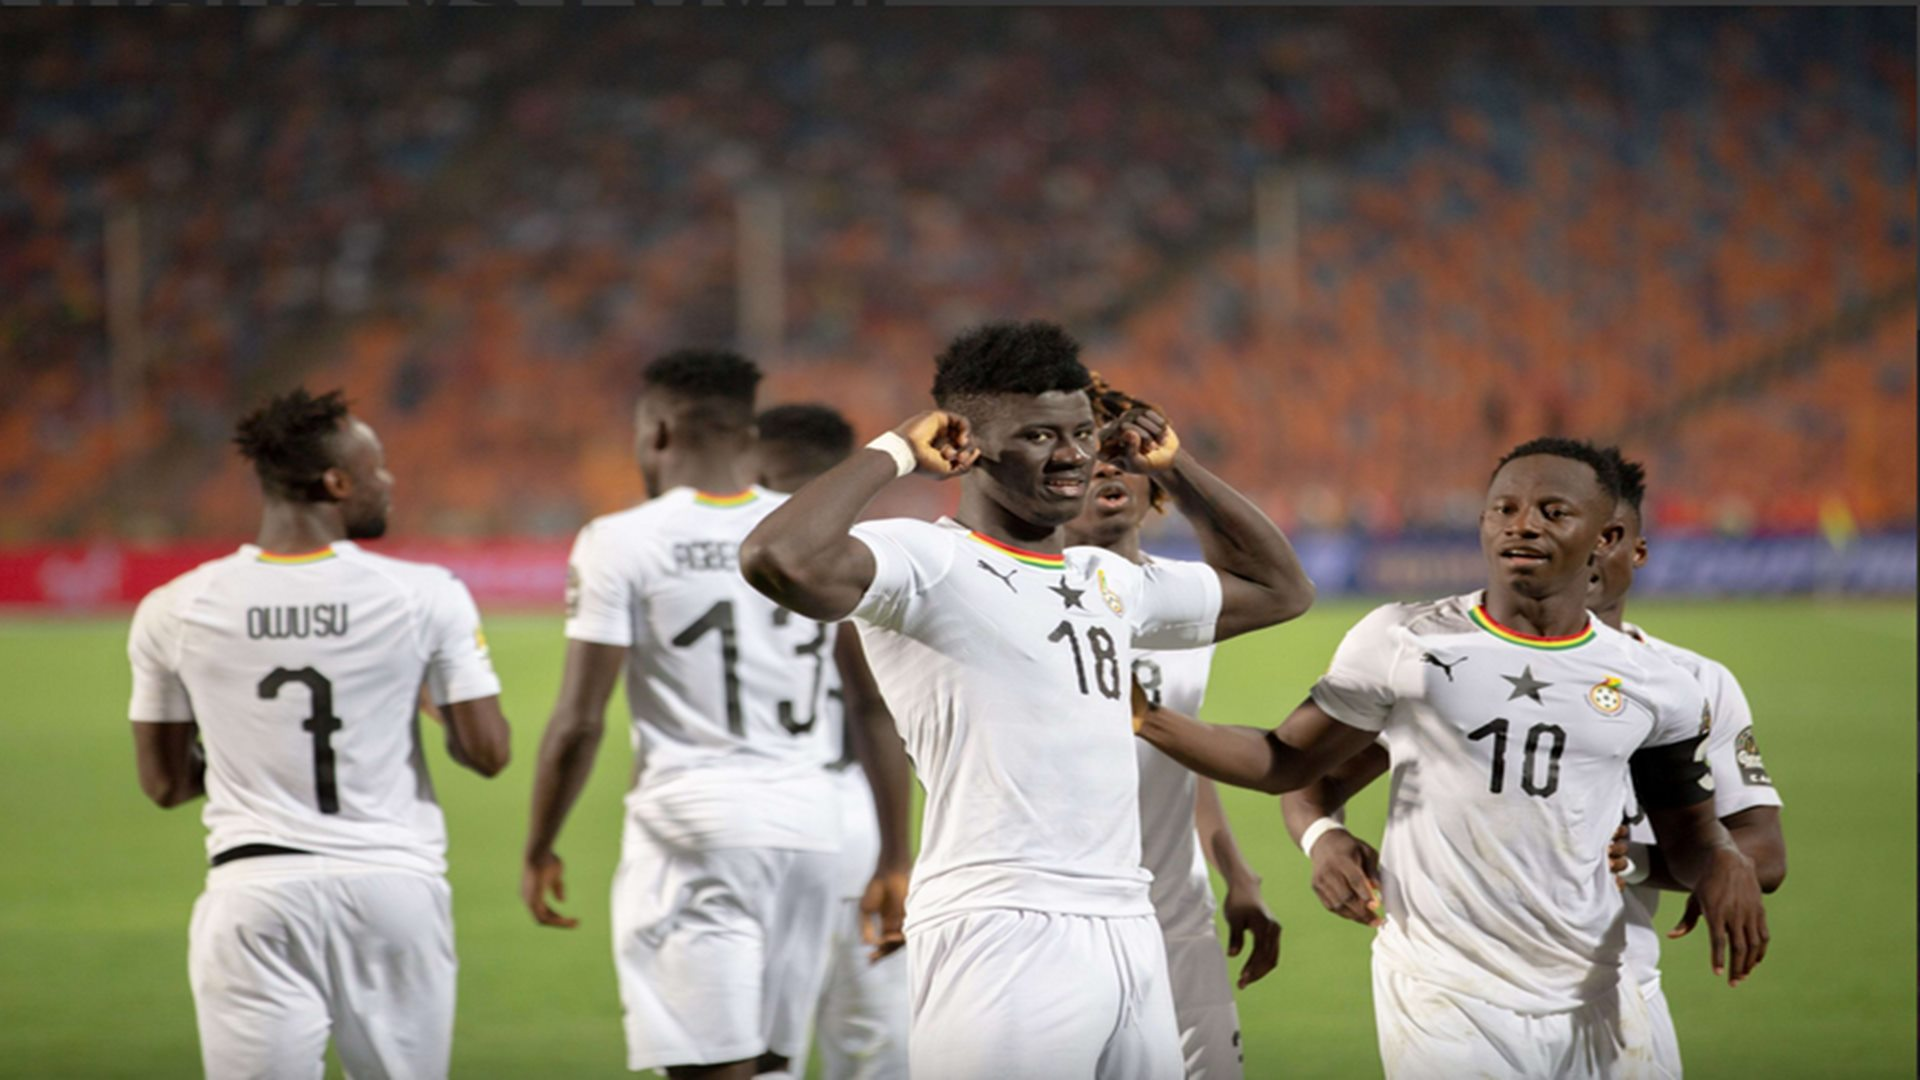 U23 Afcon: Coach Tanko, 'relieved' Owusu shed light on Ghana win over Mali